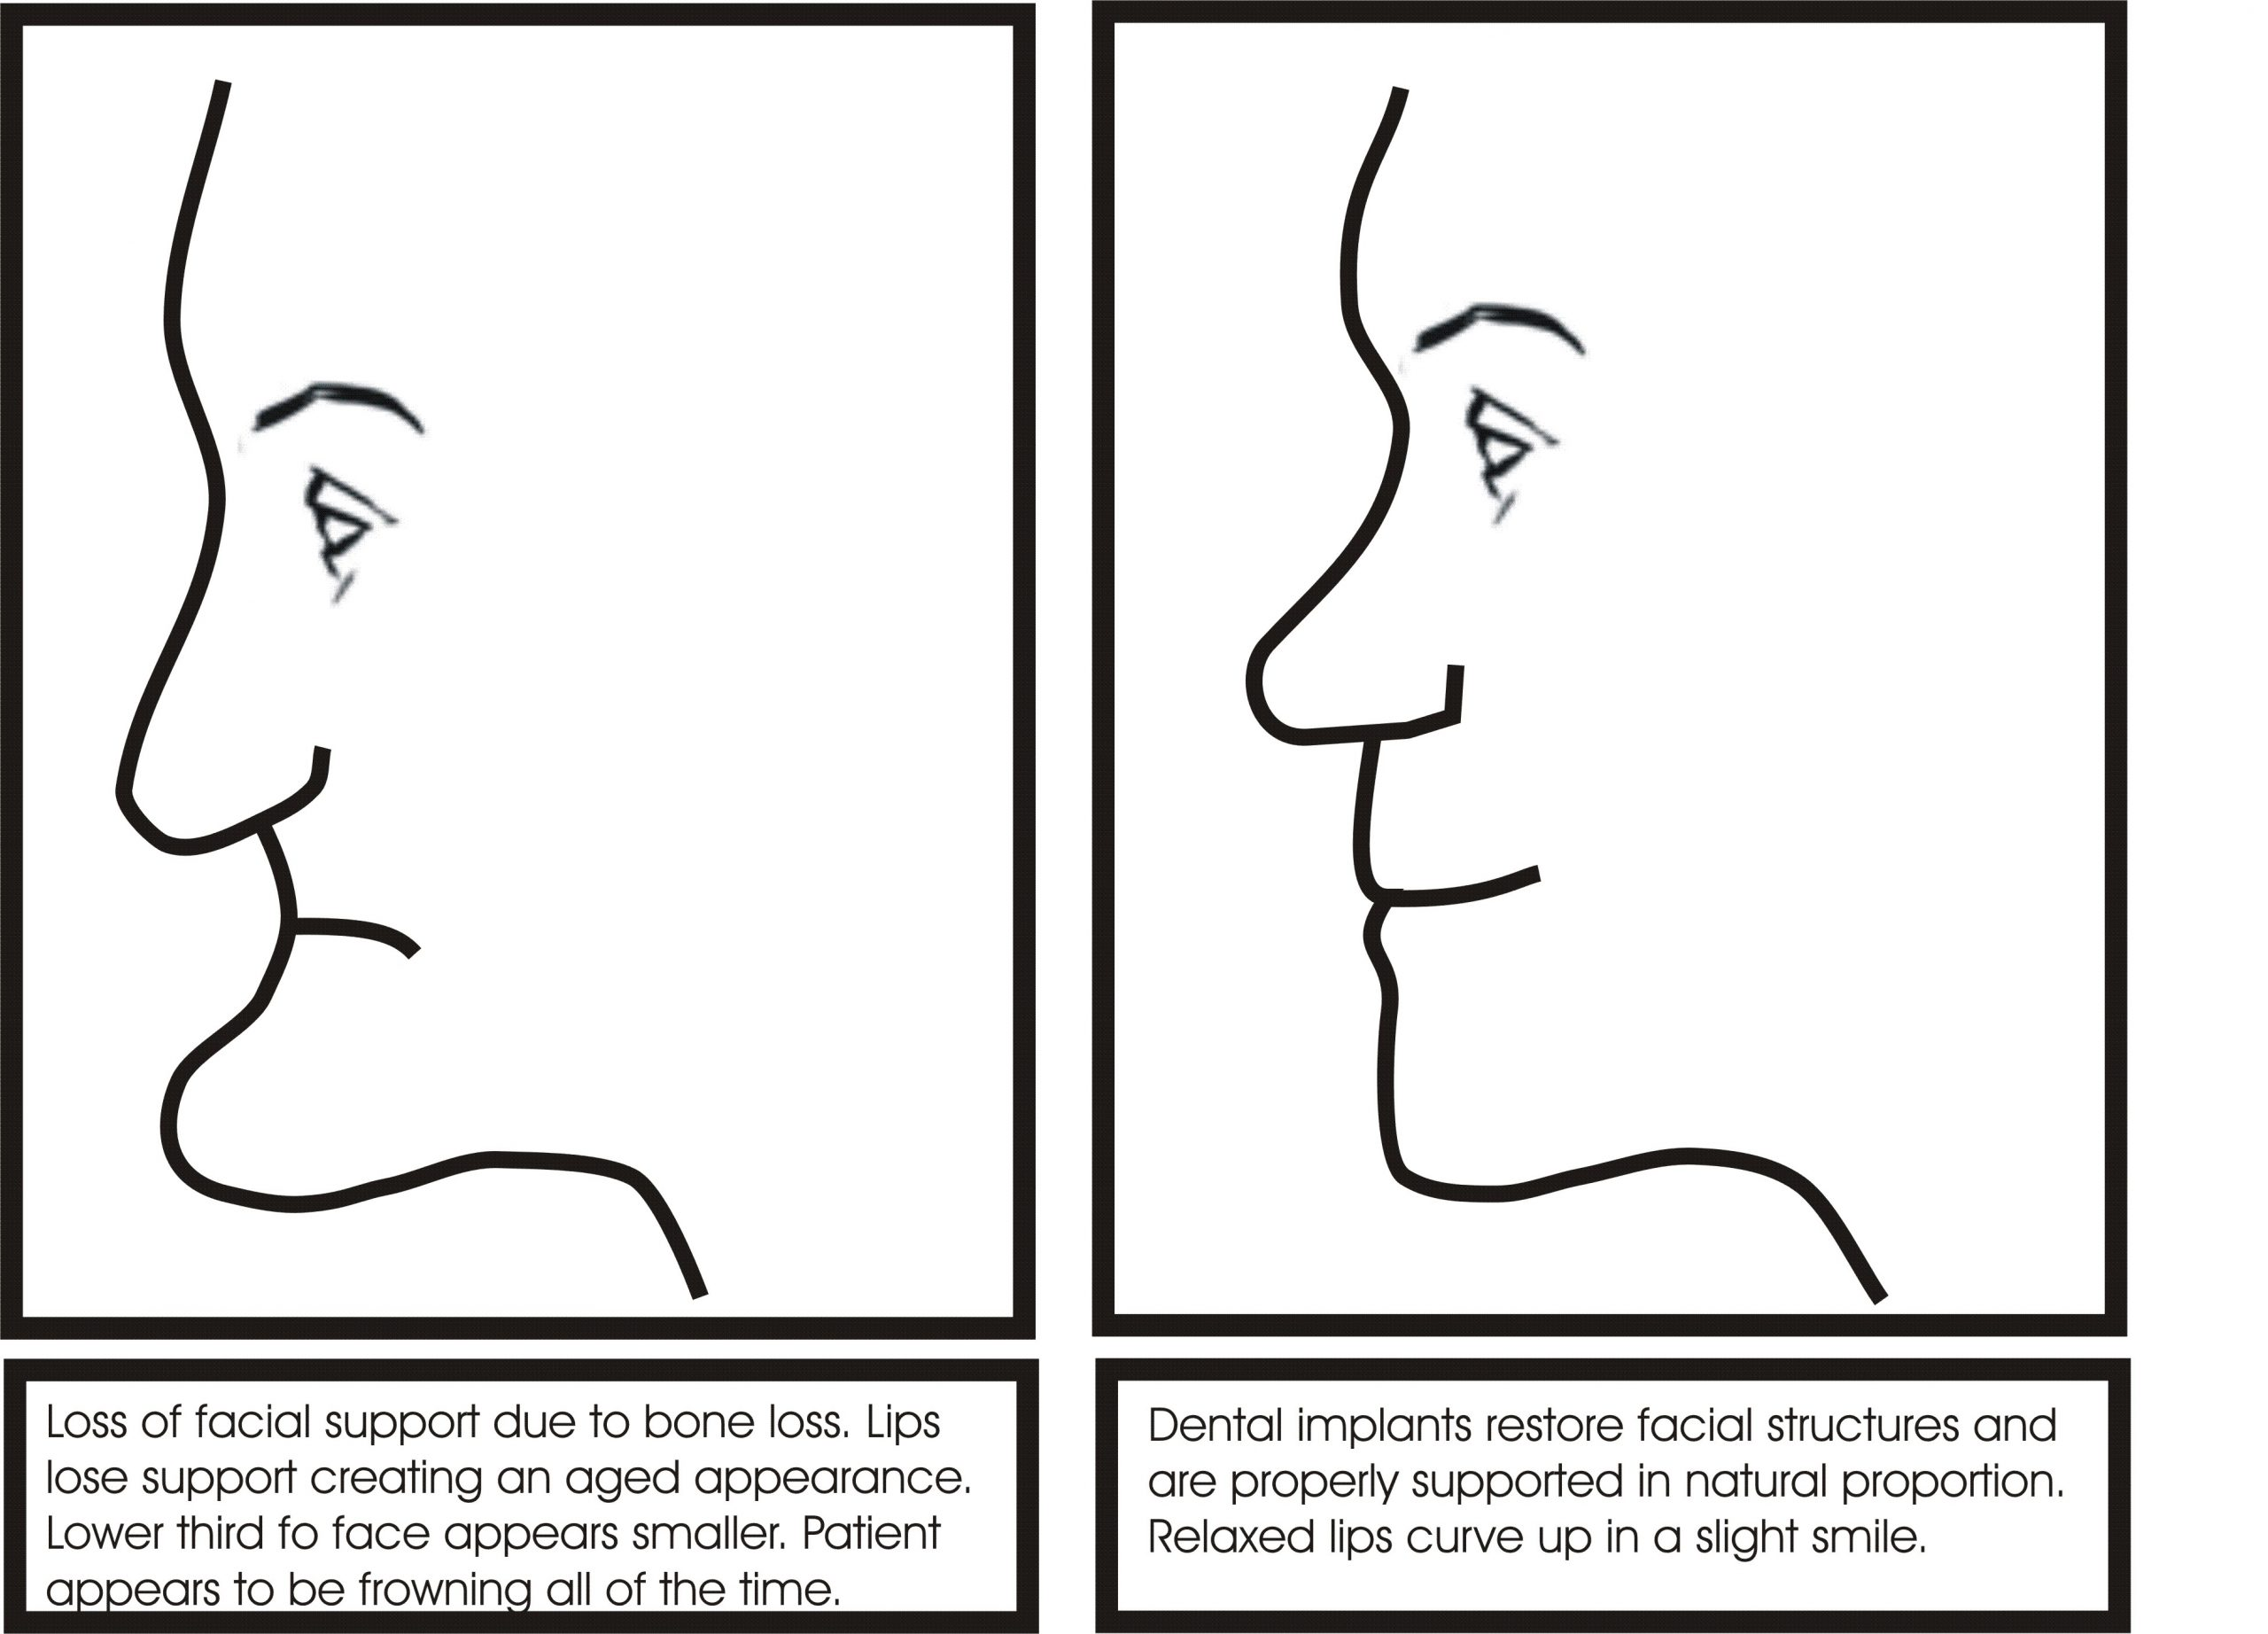 Illustration of facial collapse due to bone loss and restoration of facial proportion following dental implant treatment